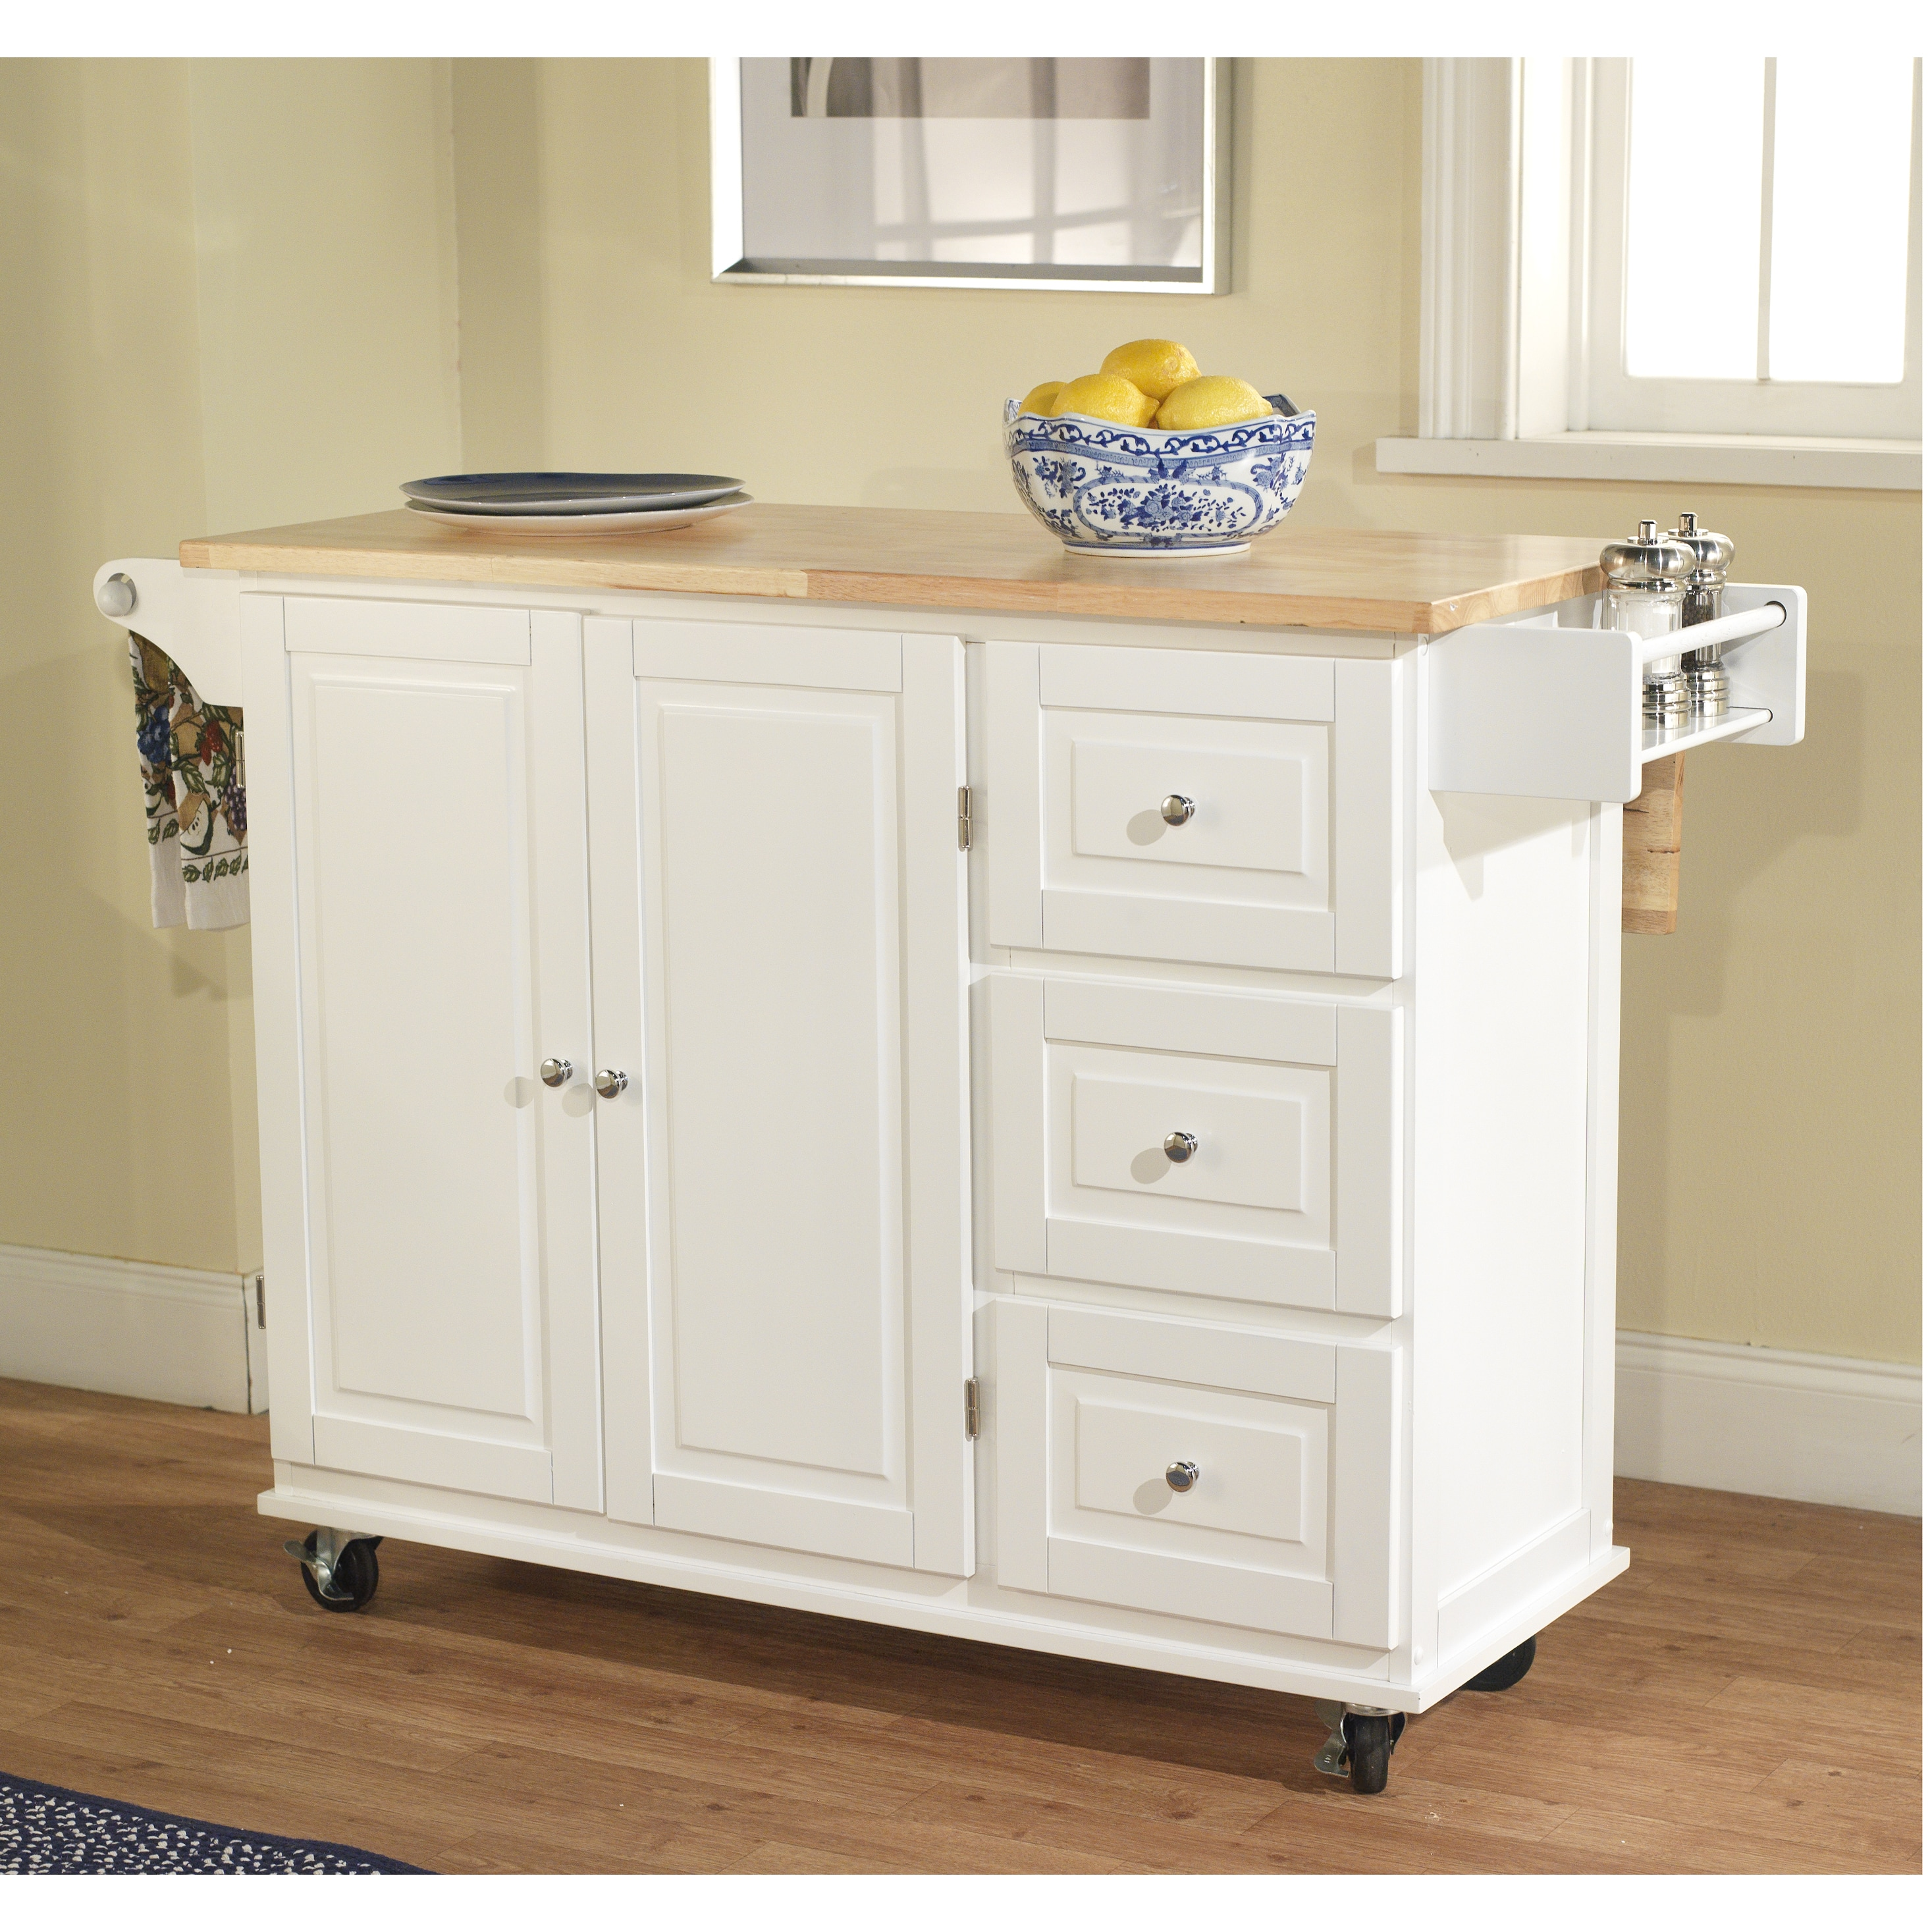 kitchen island with drop leaf clearance remodeling buffalo ny simple living aspen 3 drawer spice rack